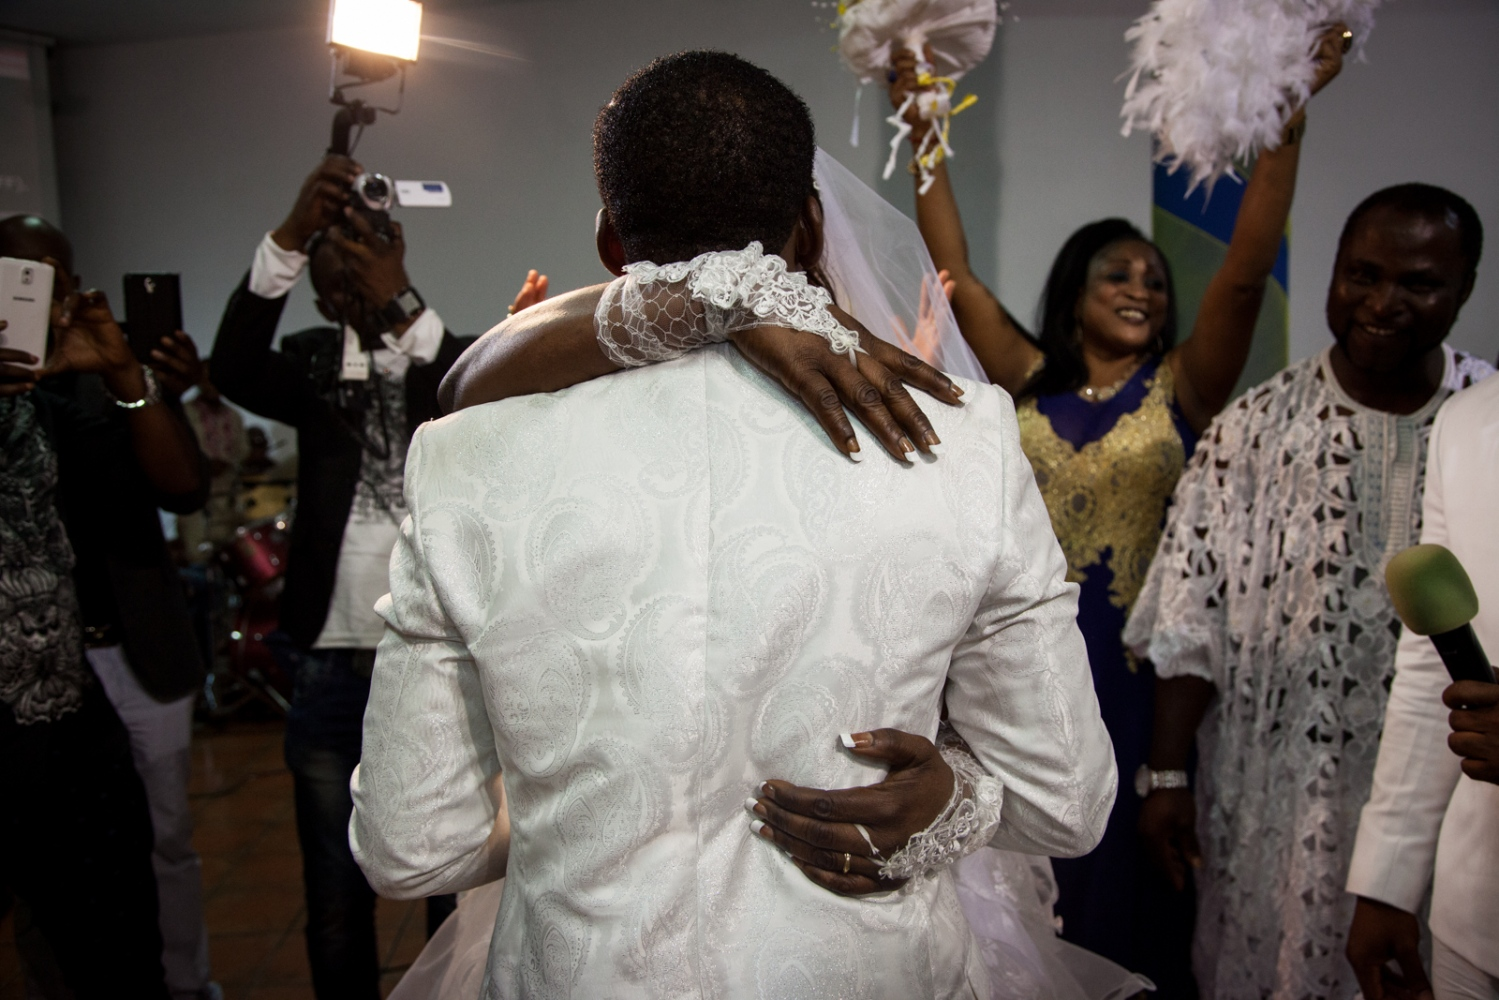 Oct. 2, 2016 - Testimony and Mike, from Nigeria, exchange their first kiss as a married couple in front of their friends and family in the Nigerian Apostolic Church, God's Mercy family in Torre Angela, a working class neighborhood in the far eastern suburbs of Rome.